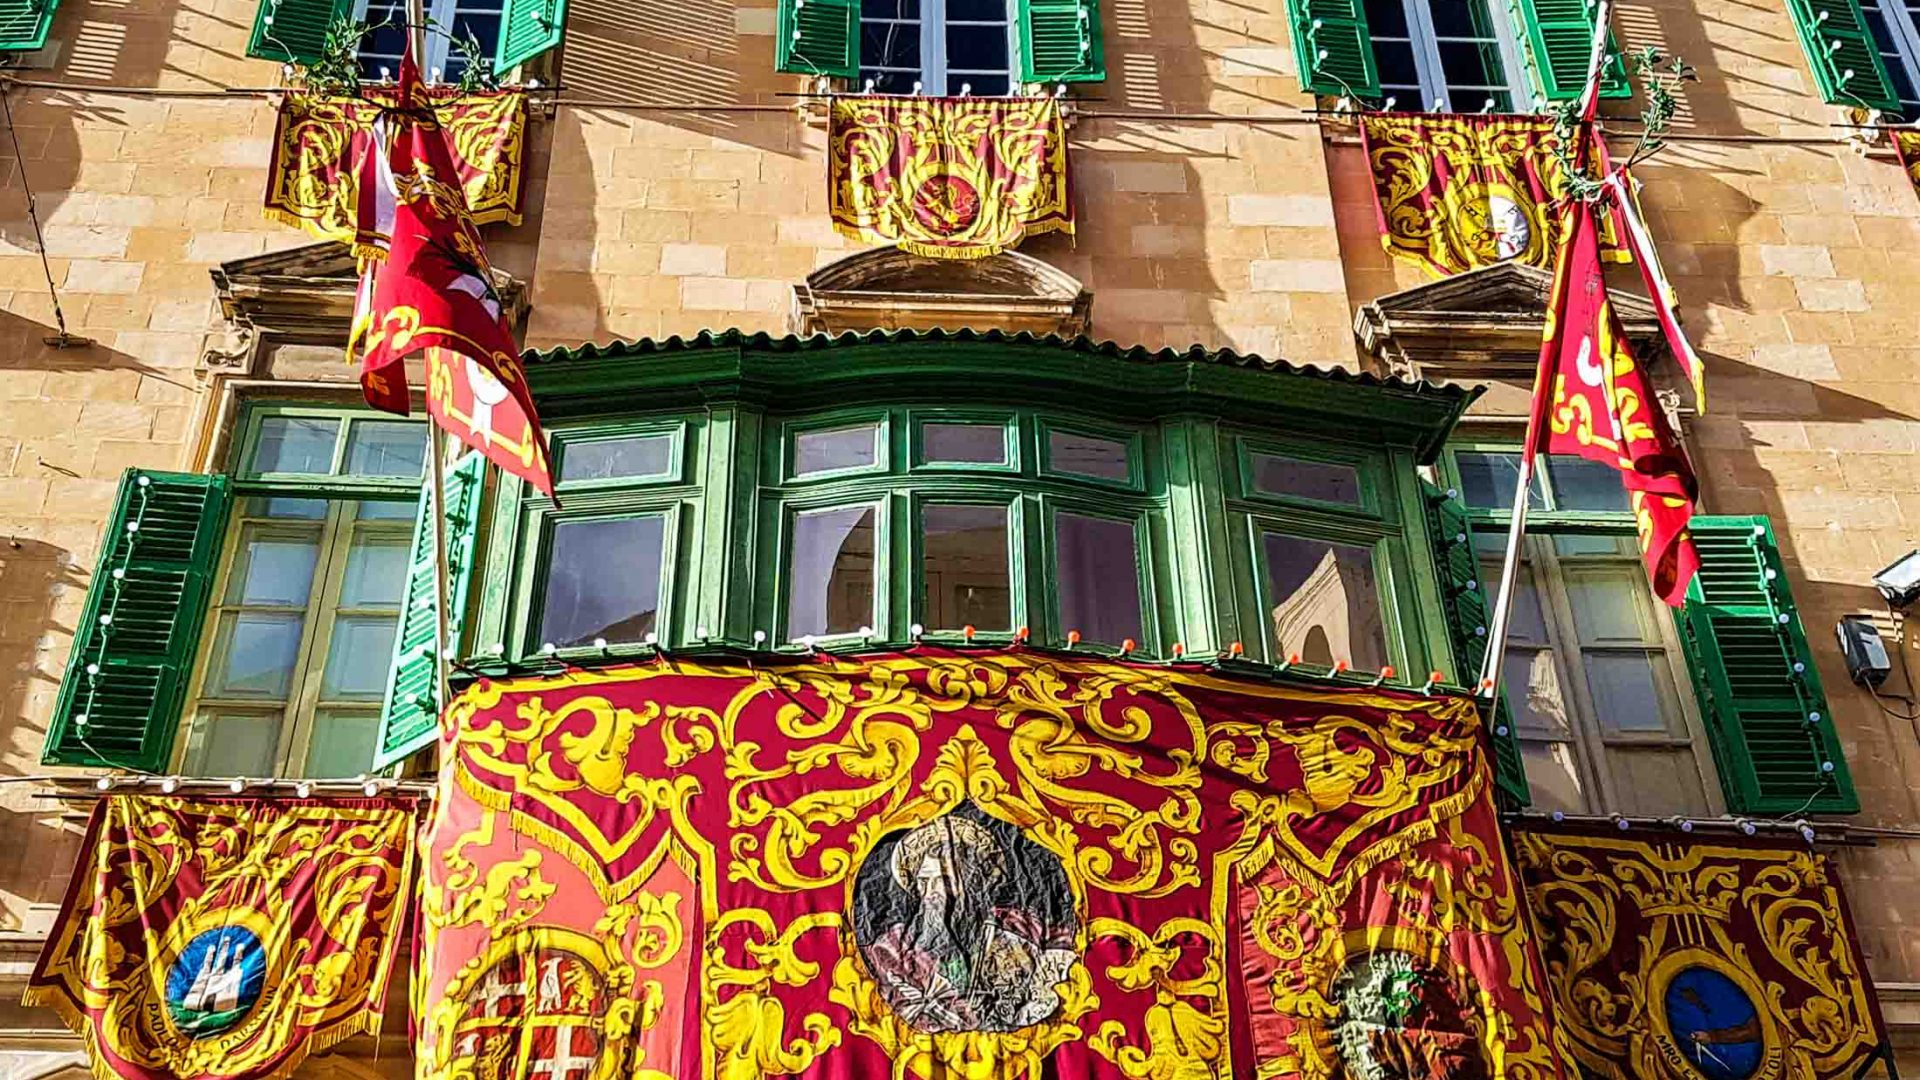 Festa façade on one of the buildings during the Valletta2018 opening week, Valletta, Malta.